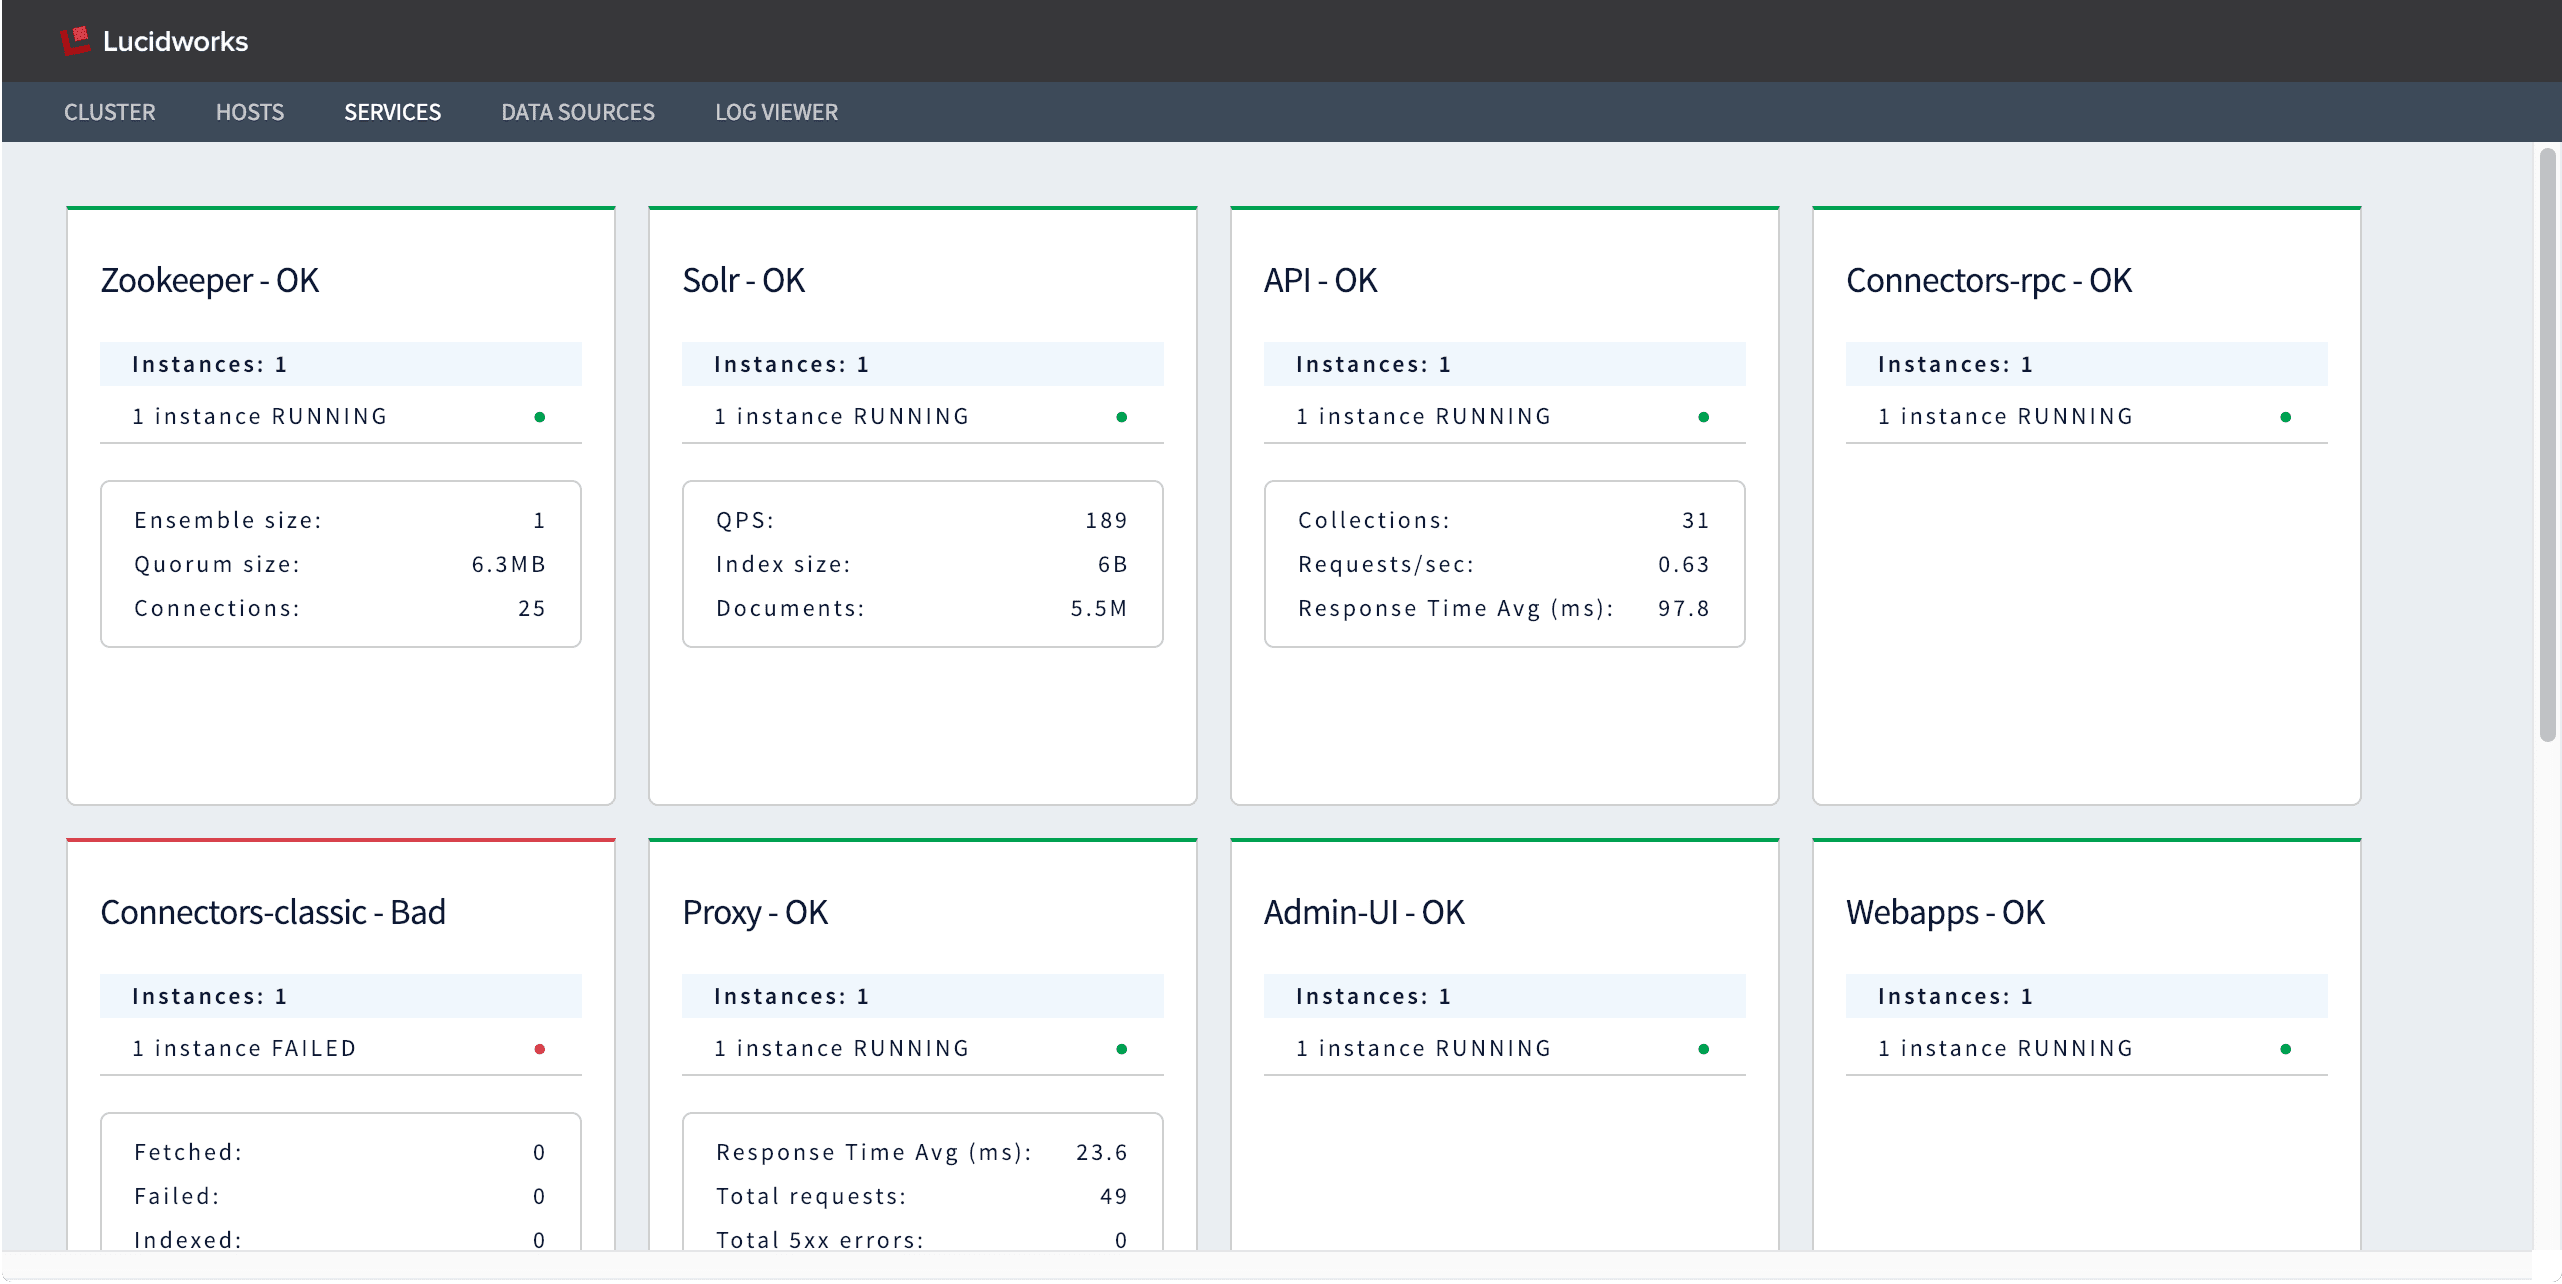 DevOps Center Services dashboard